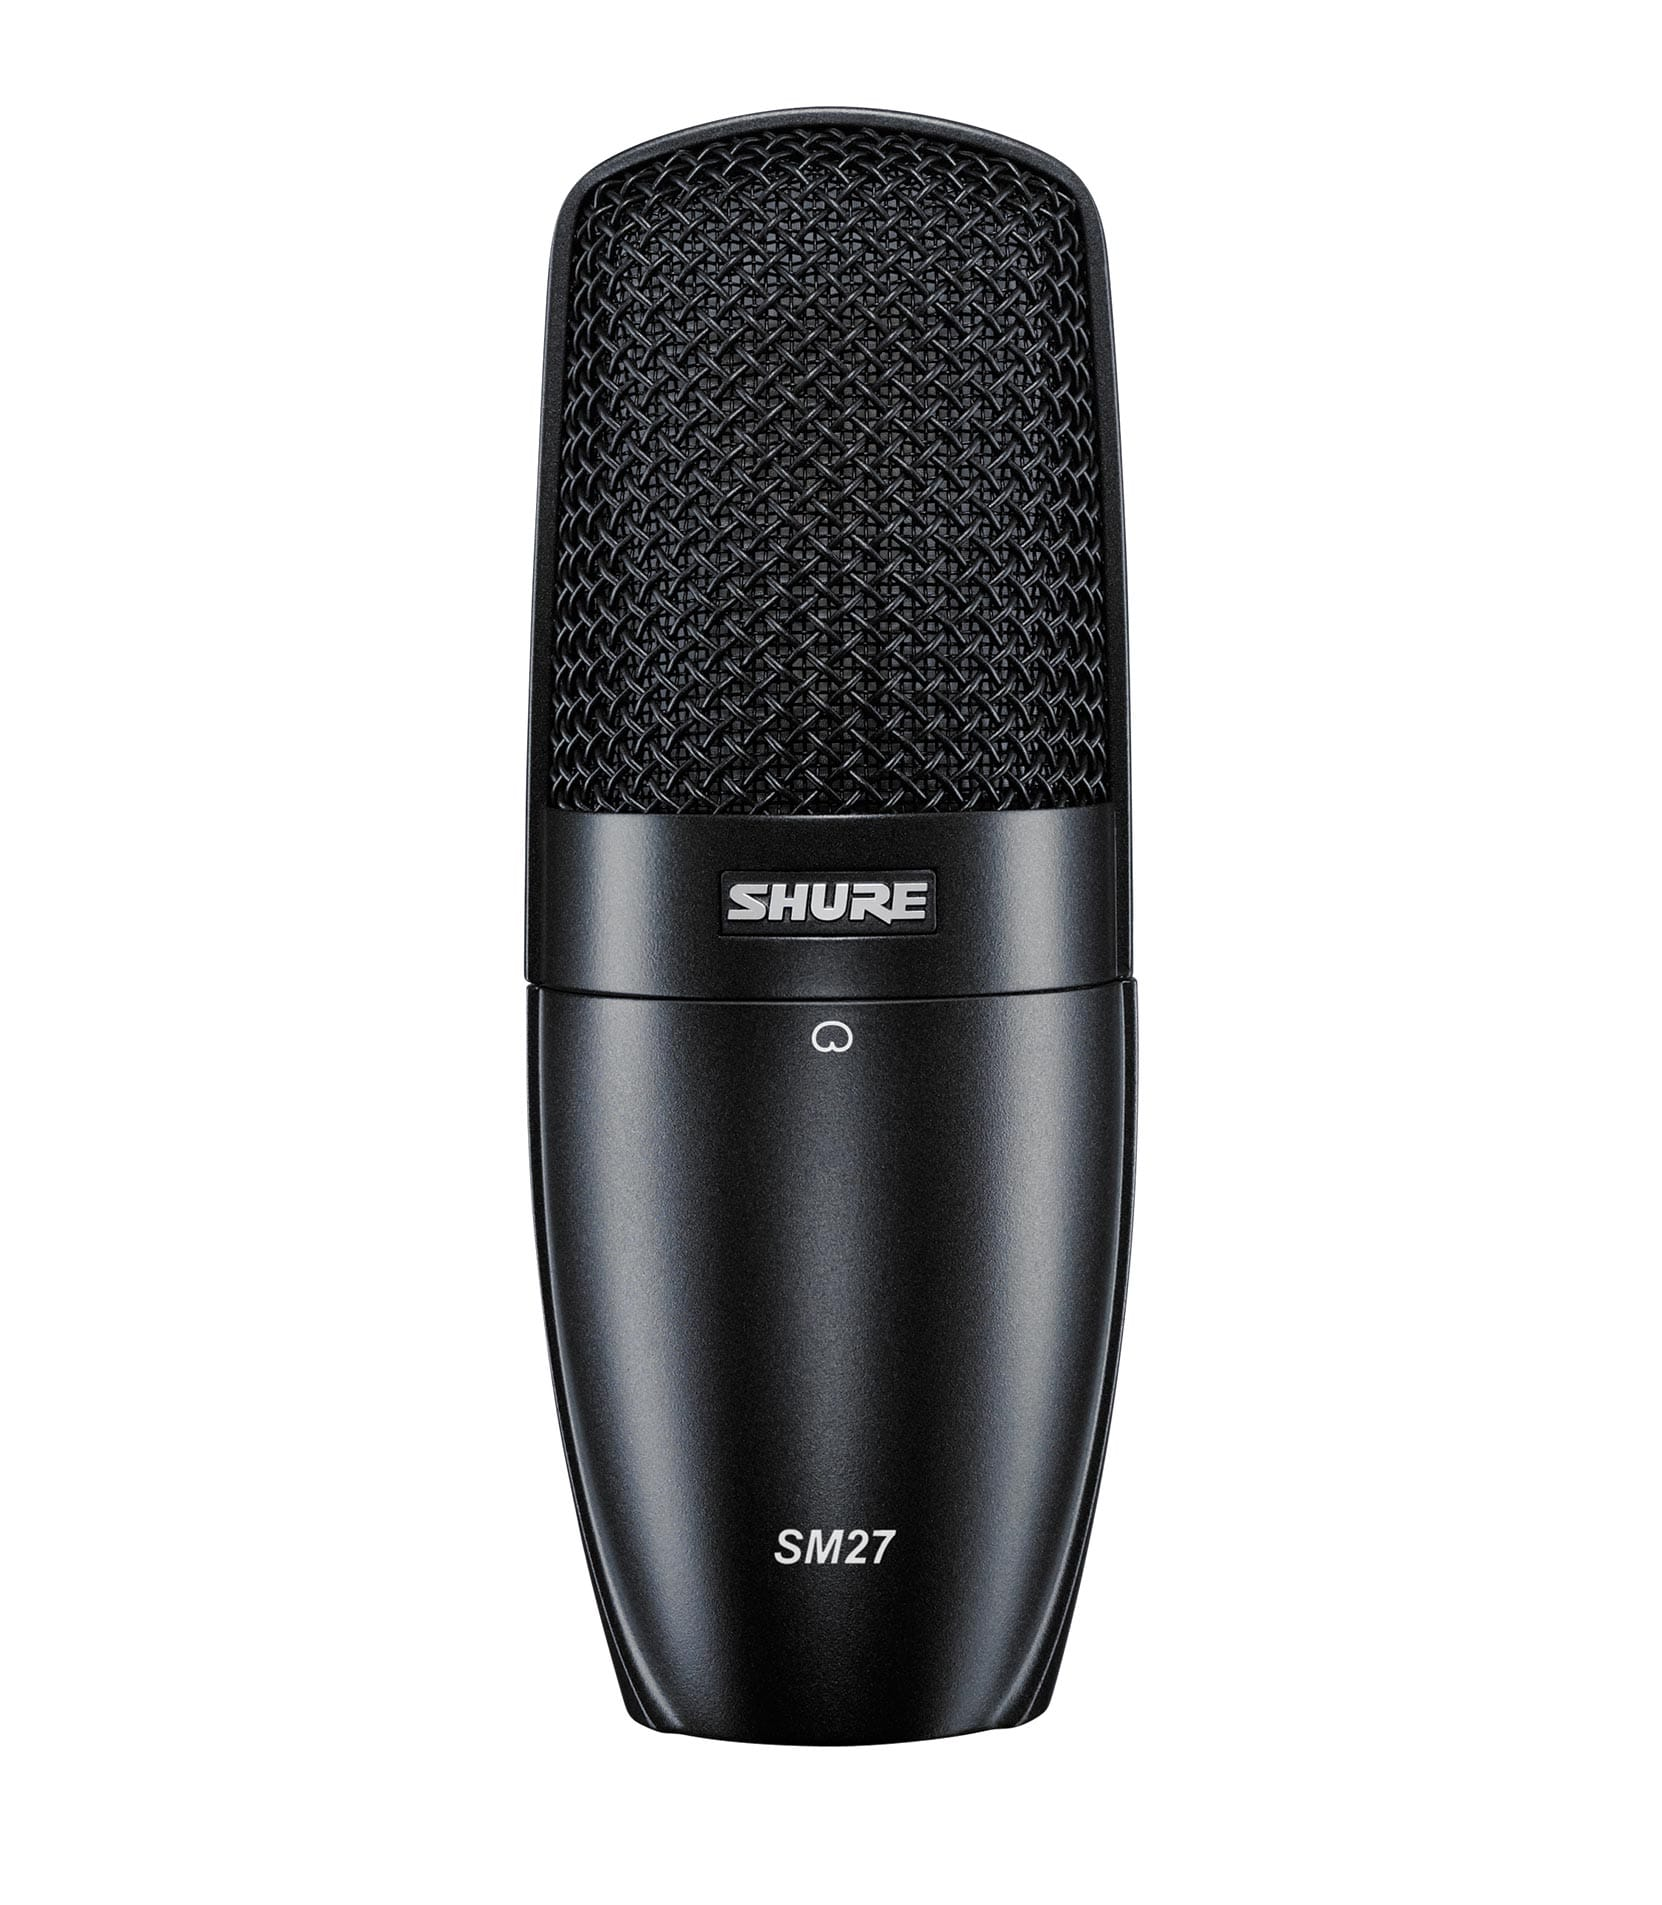 Buy shure - SM27 Cardioid Condenser Large Diaphragm Microphone